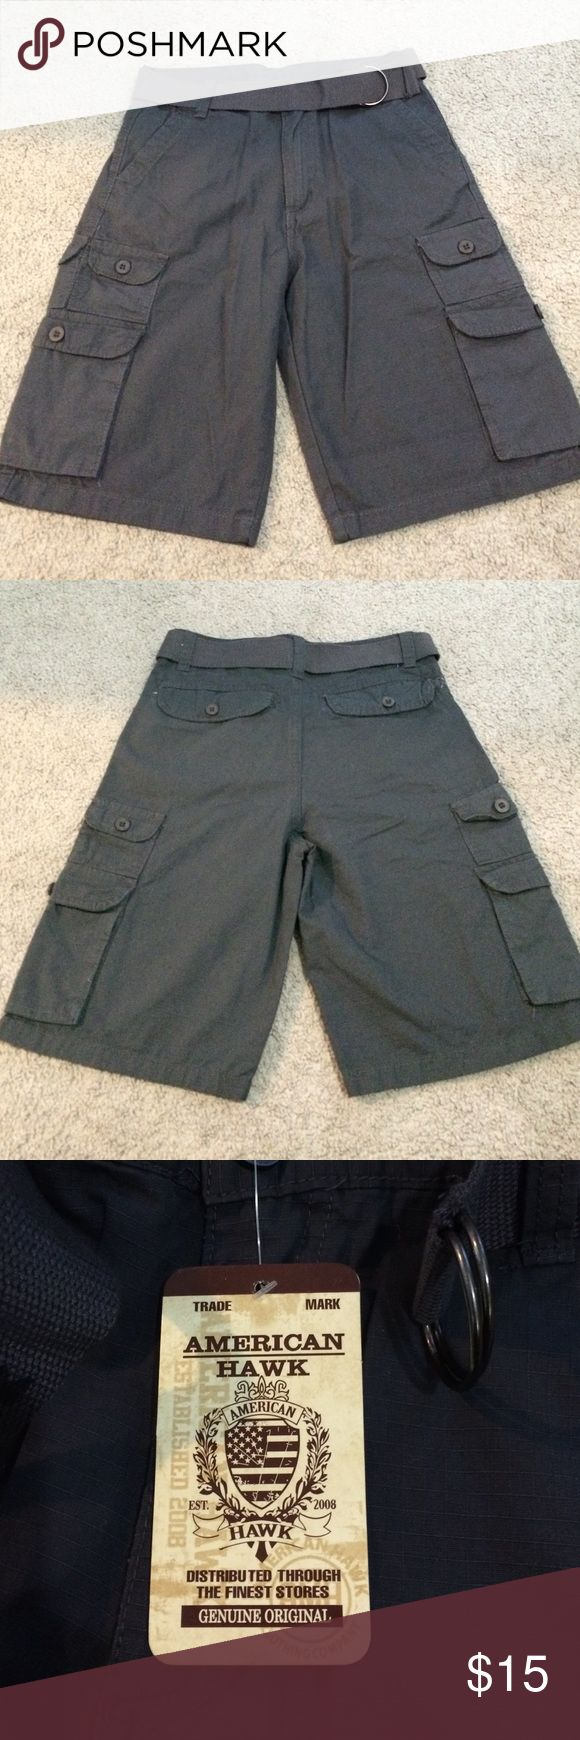 American Hawk Boys Cargo Shorts - NWT Gray boys cargo shorts from American Hawk. Will come with the belt shown. Great condition! 🚫 No Trades 🚫 No Lowball Offers 🚫 Remember...Posh Takes A Fee ❤️ American Hawk Bottoms Shorts